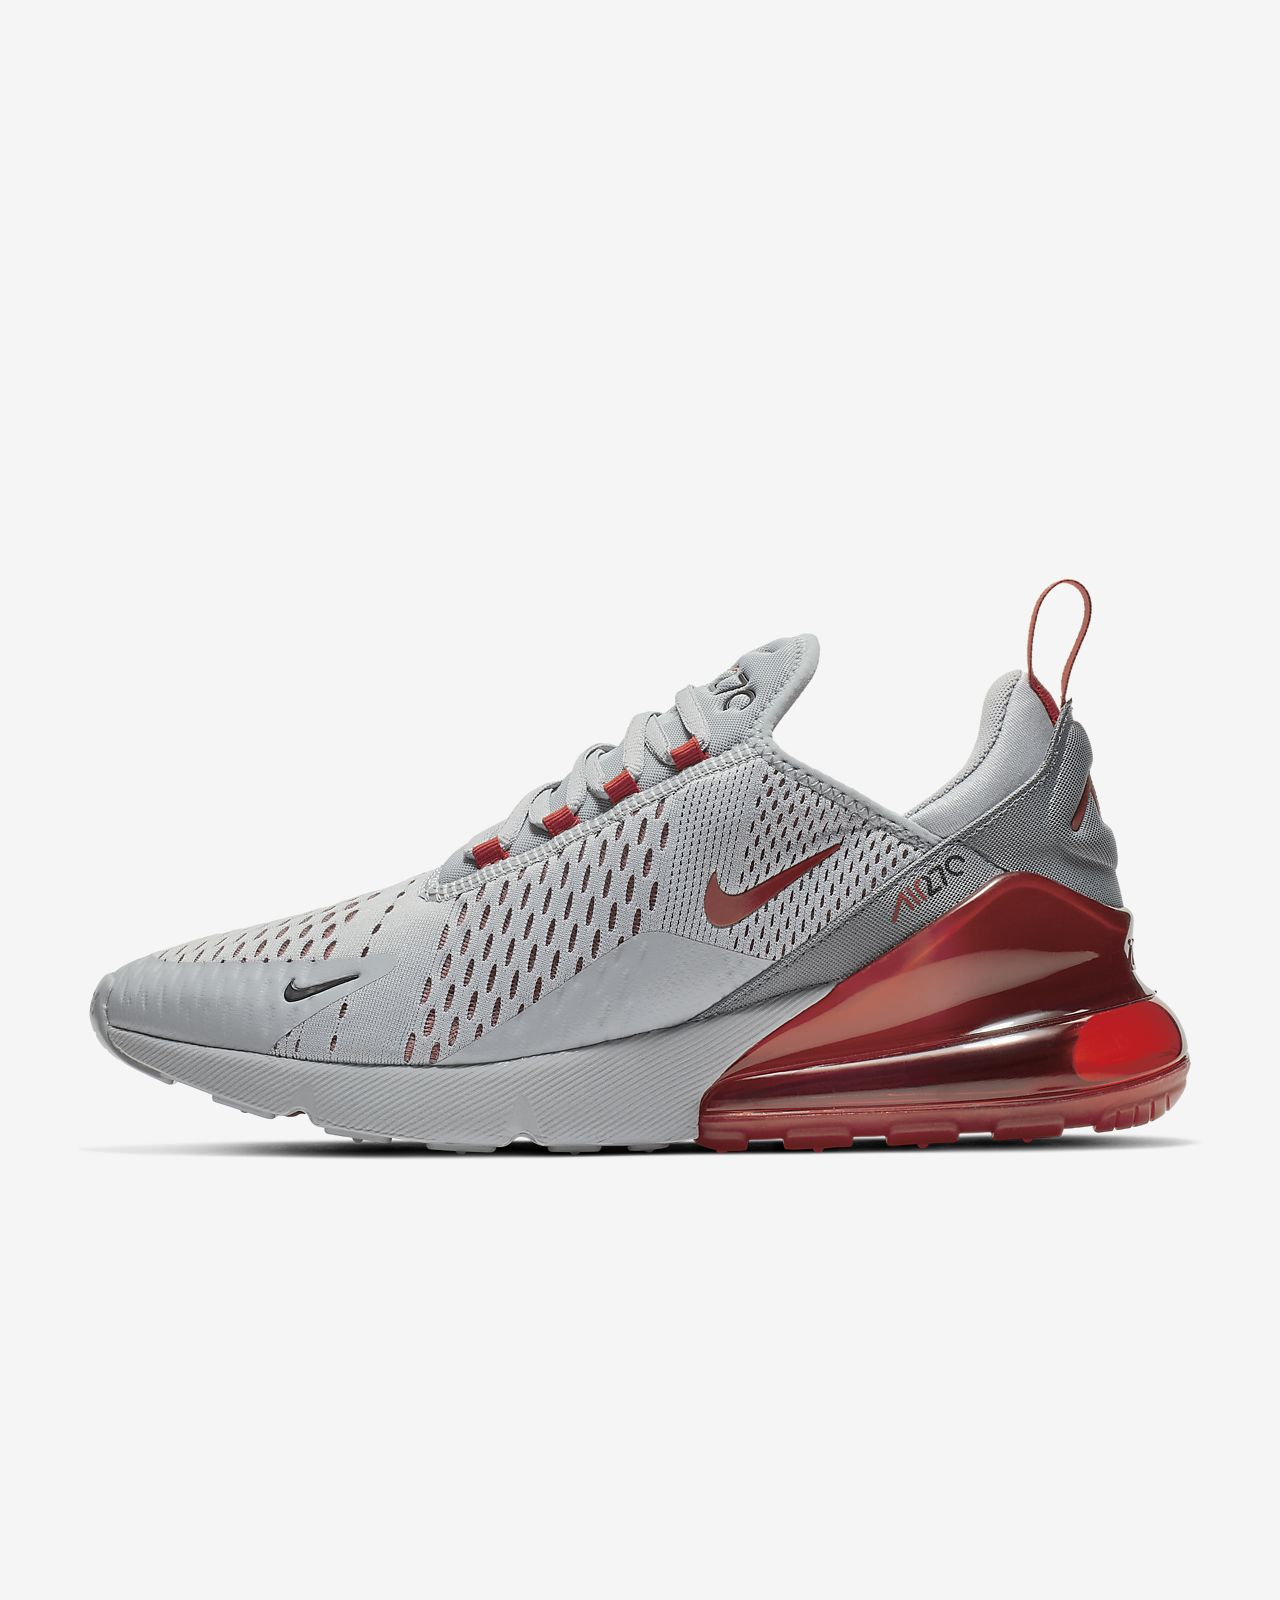 cheaper 0e349 8ecc5 Nike Air Max 270